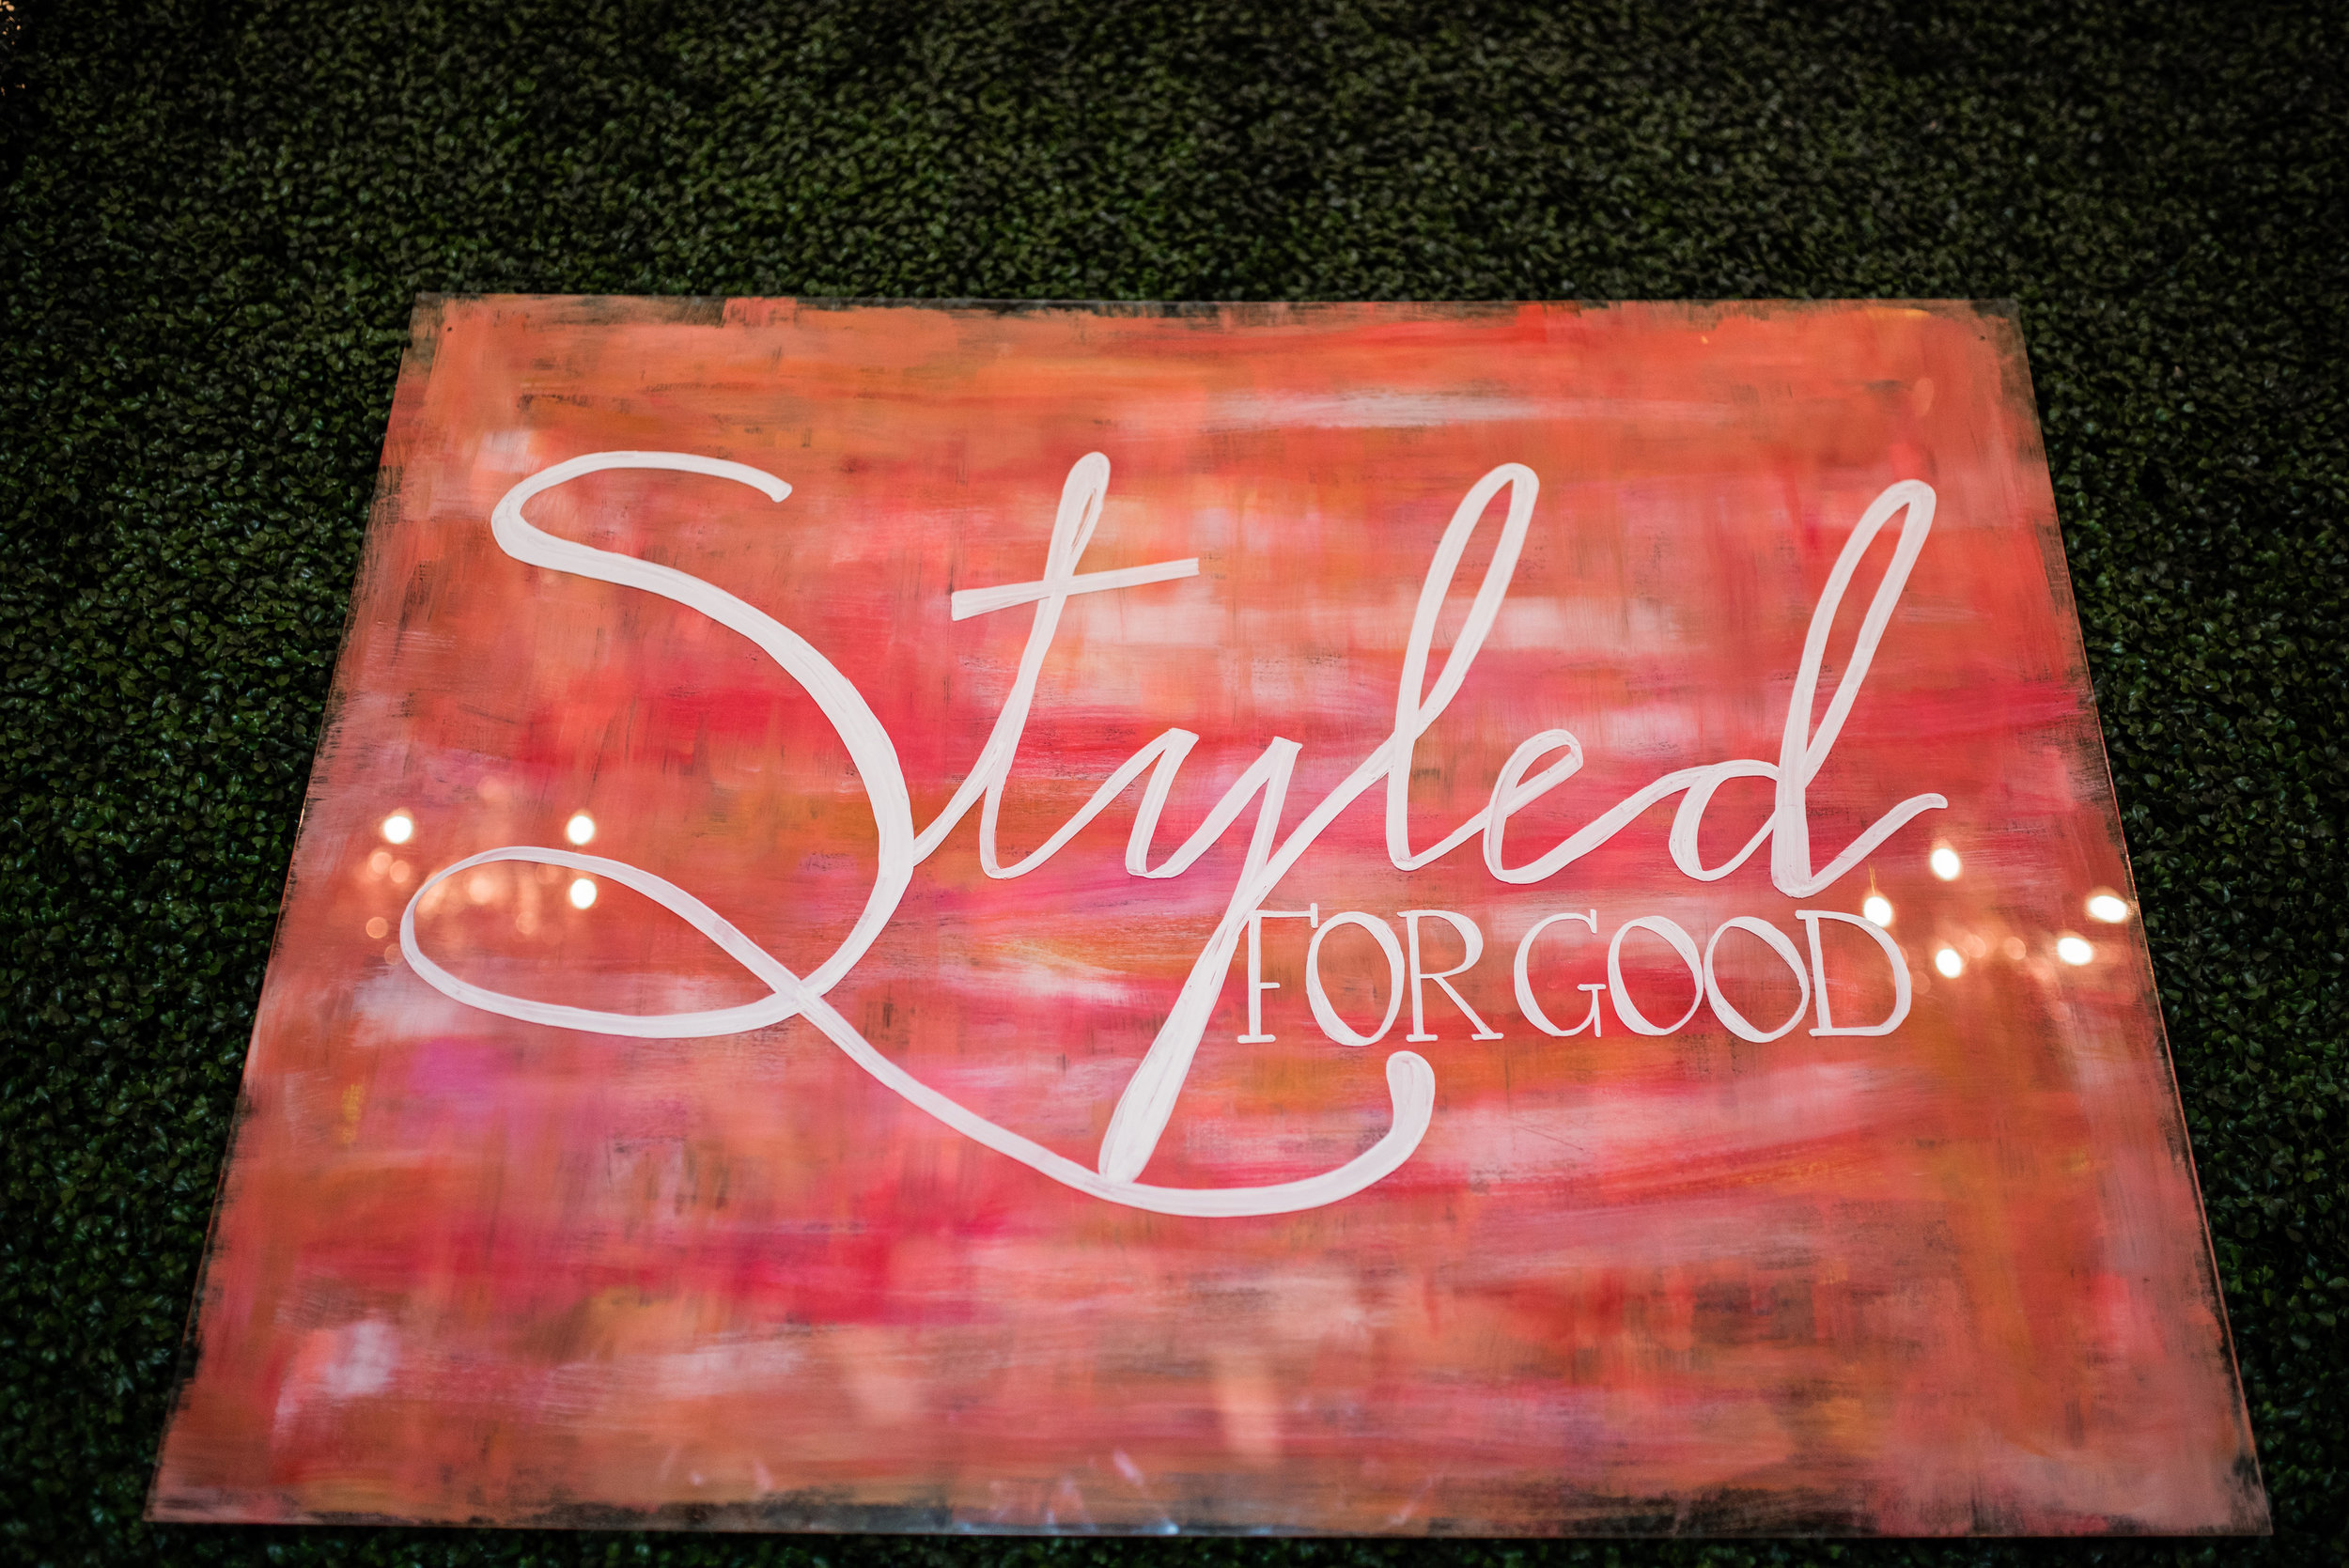 Styled for Good 2016 - Custom Hand Lettered Acrylic Sign by Hooked Calligraphy